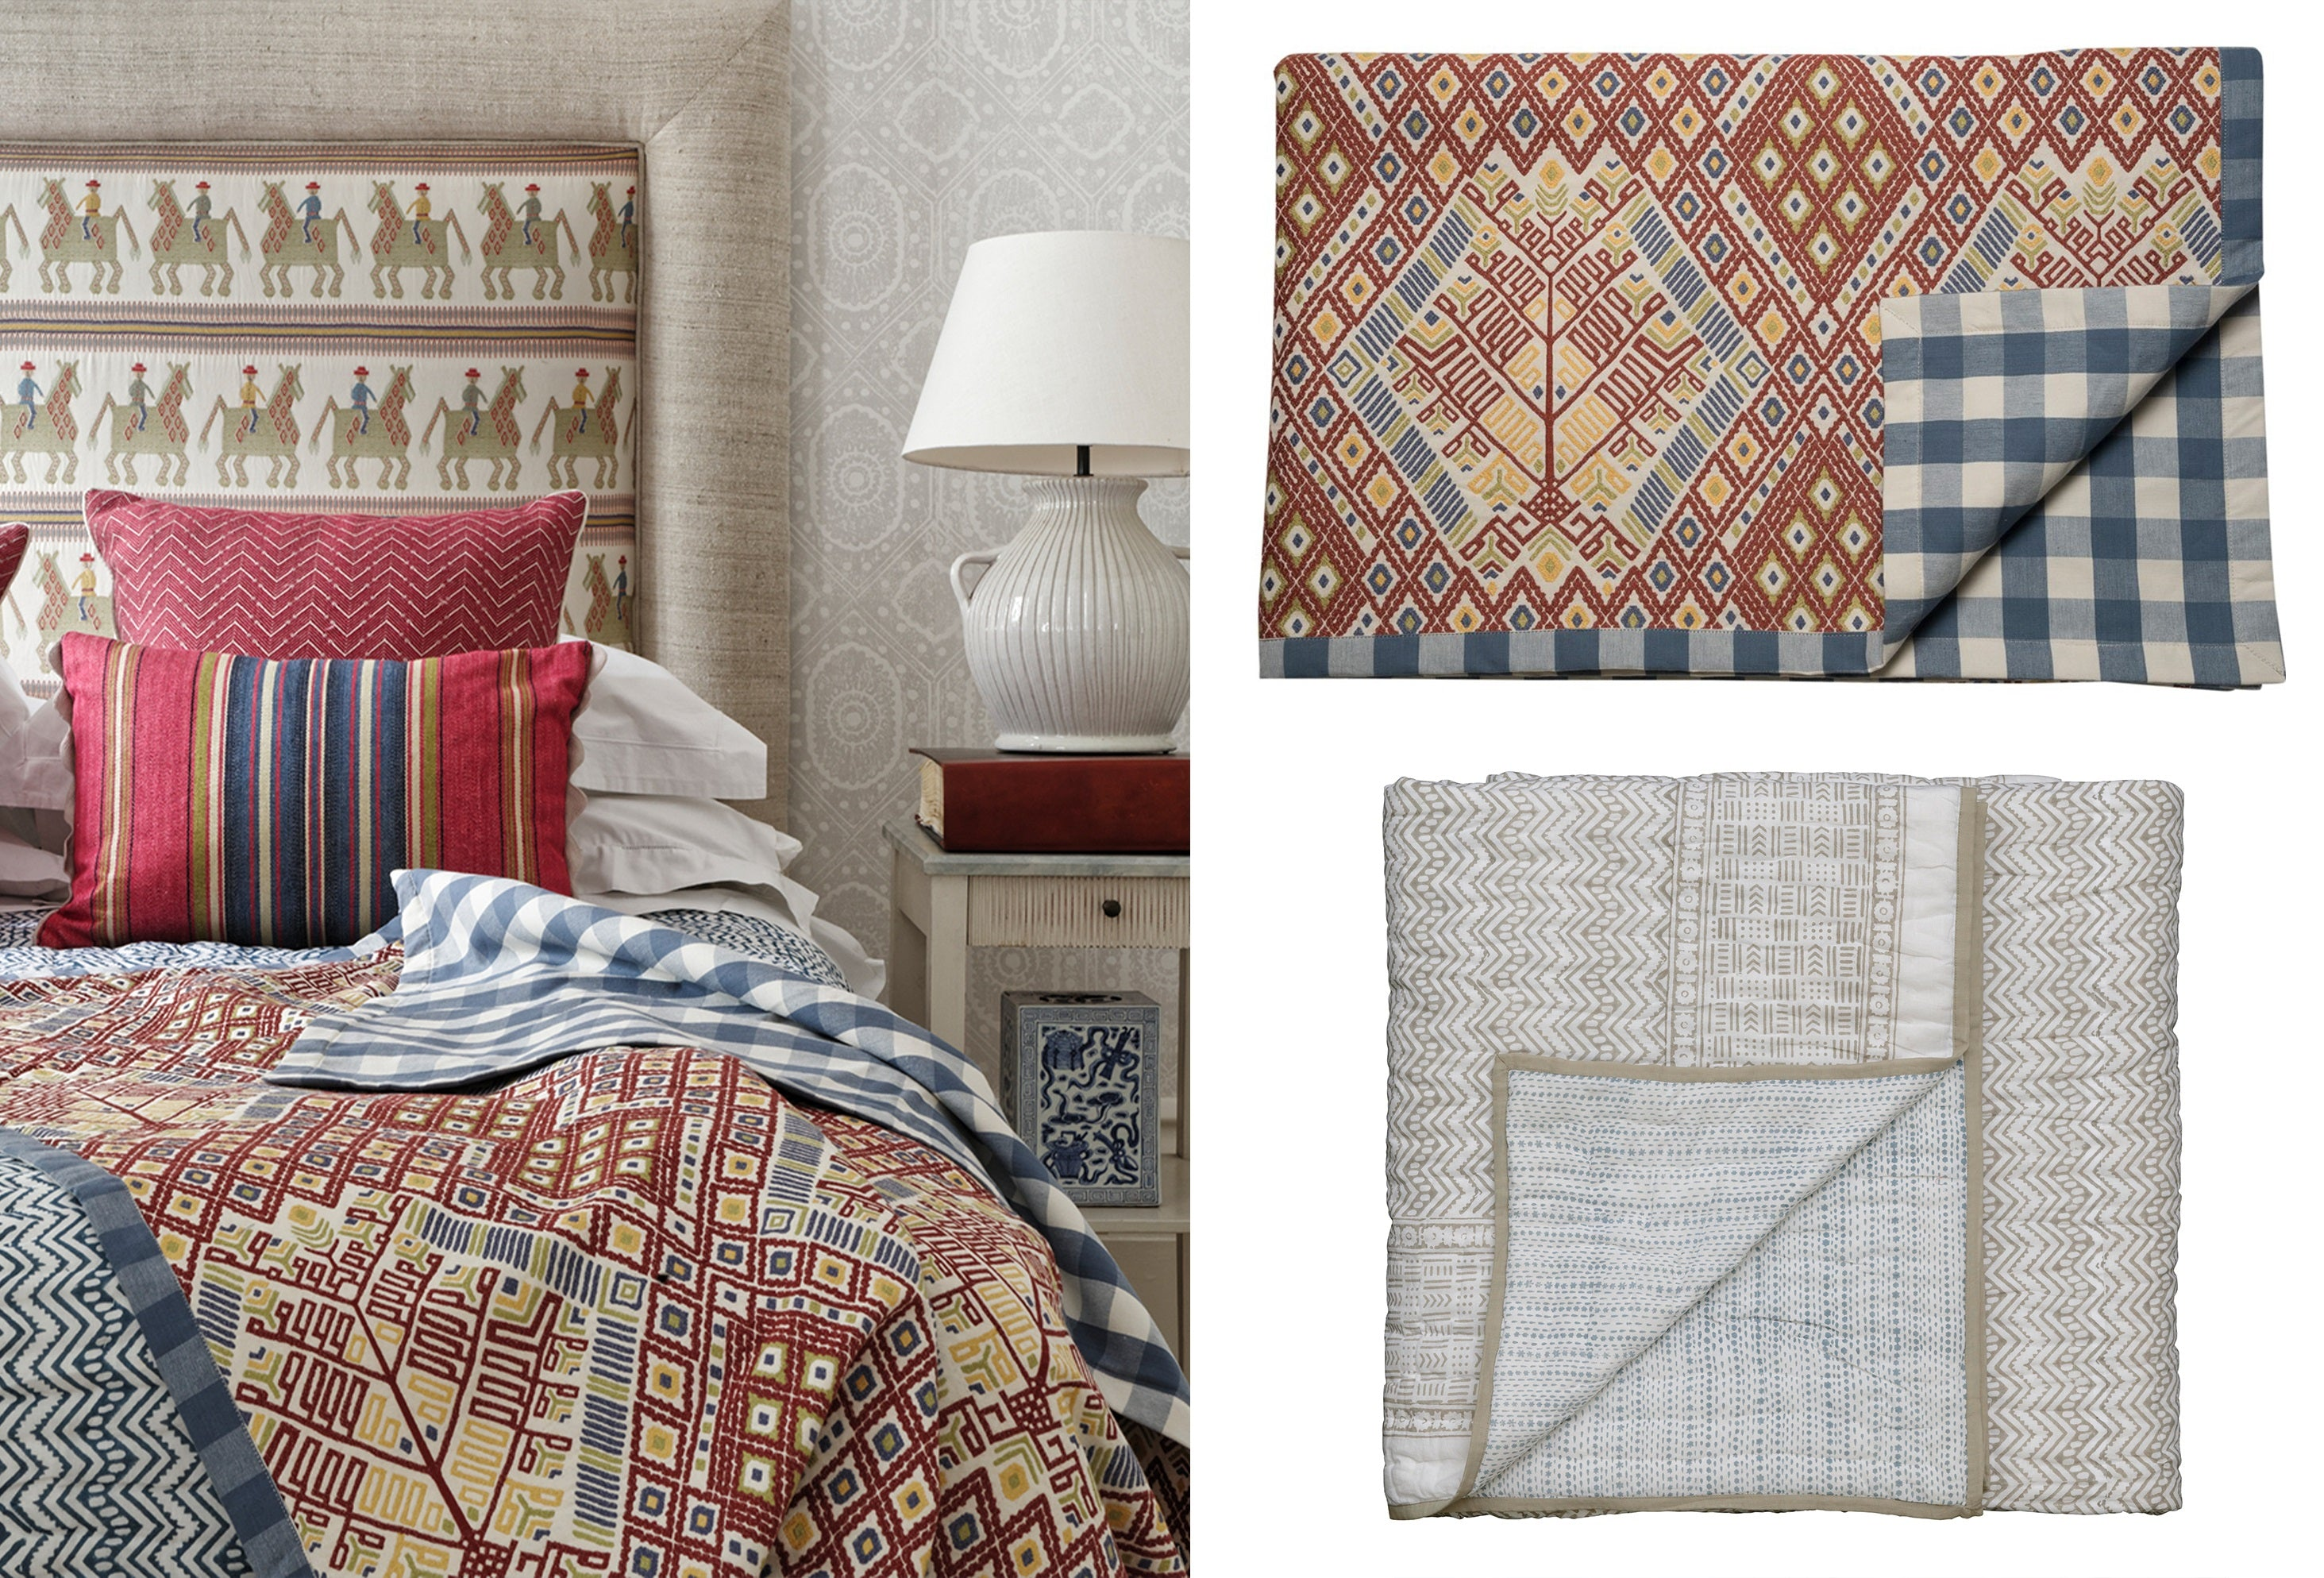 Wicklewood Guatemalan inspired reversible throws are perfect to combine with our reversible Indian quilts